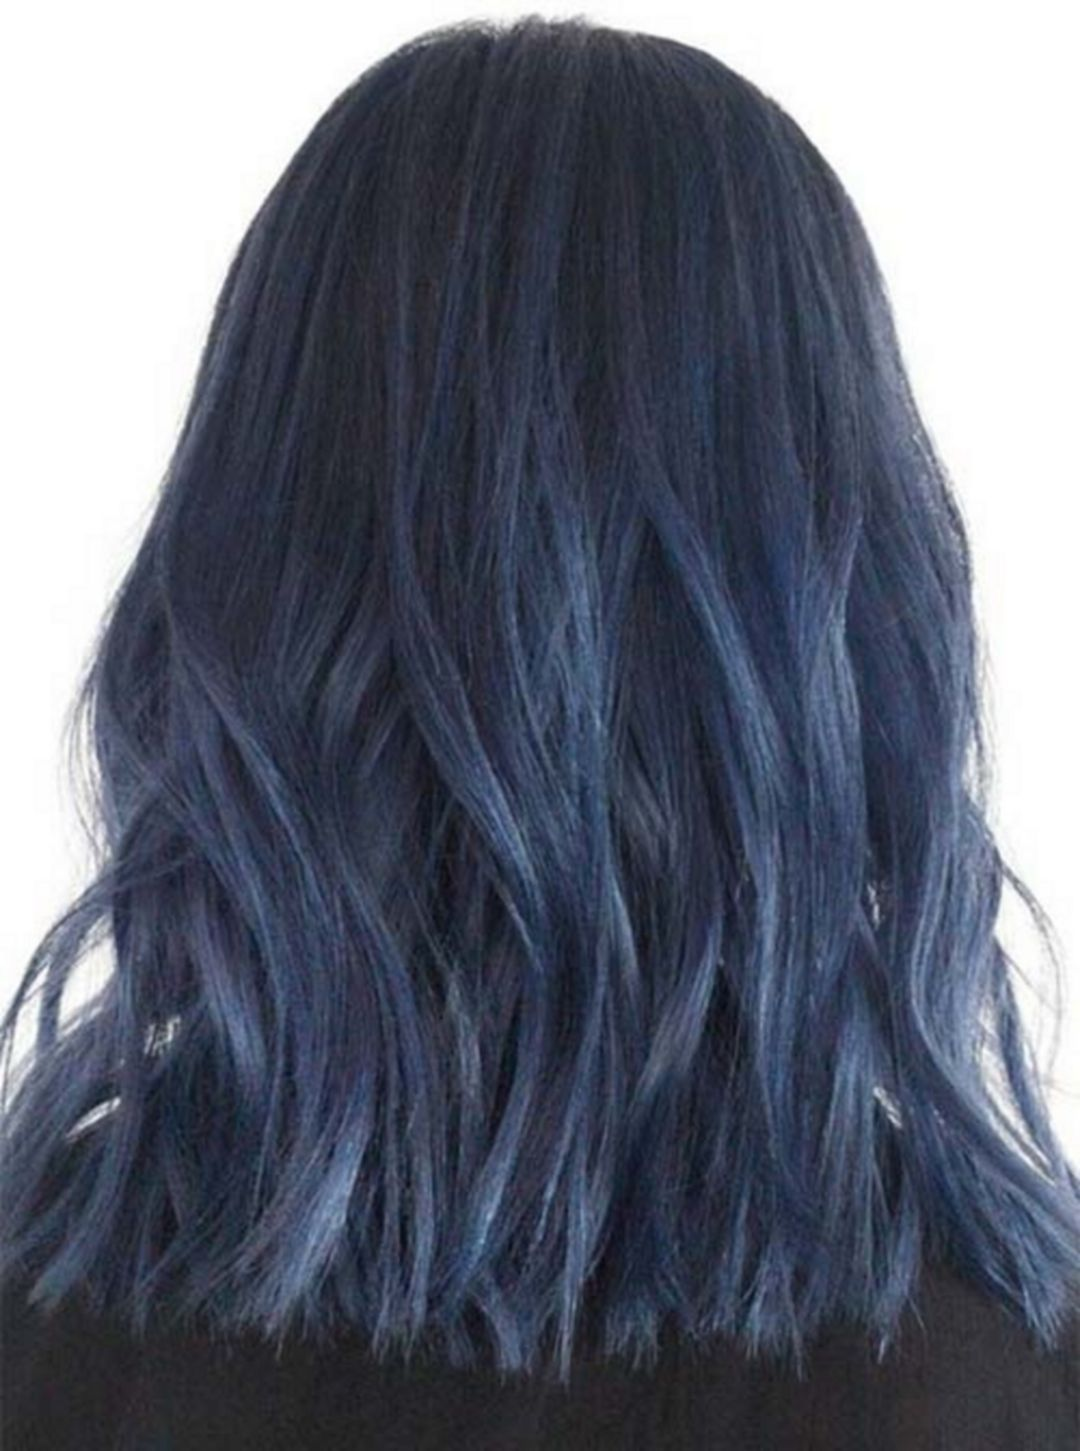 Pin by eman abd alaziz on future hair colors pinterest hair